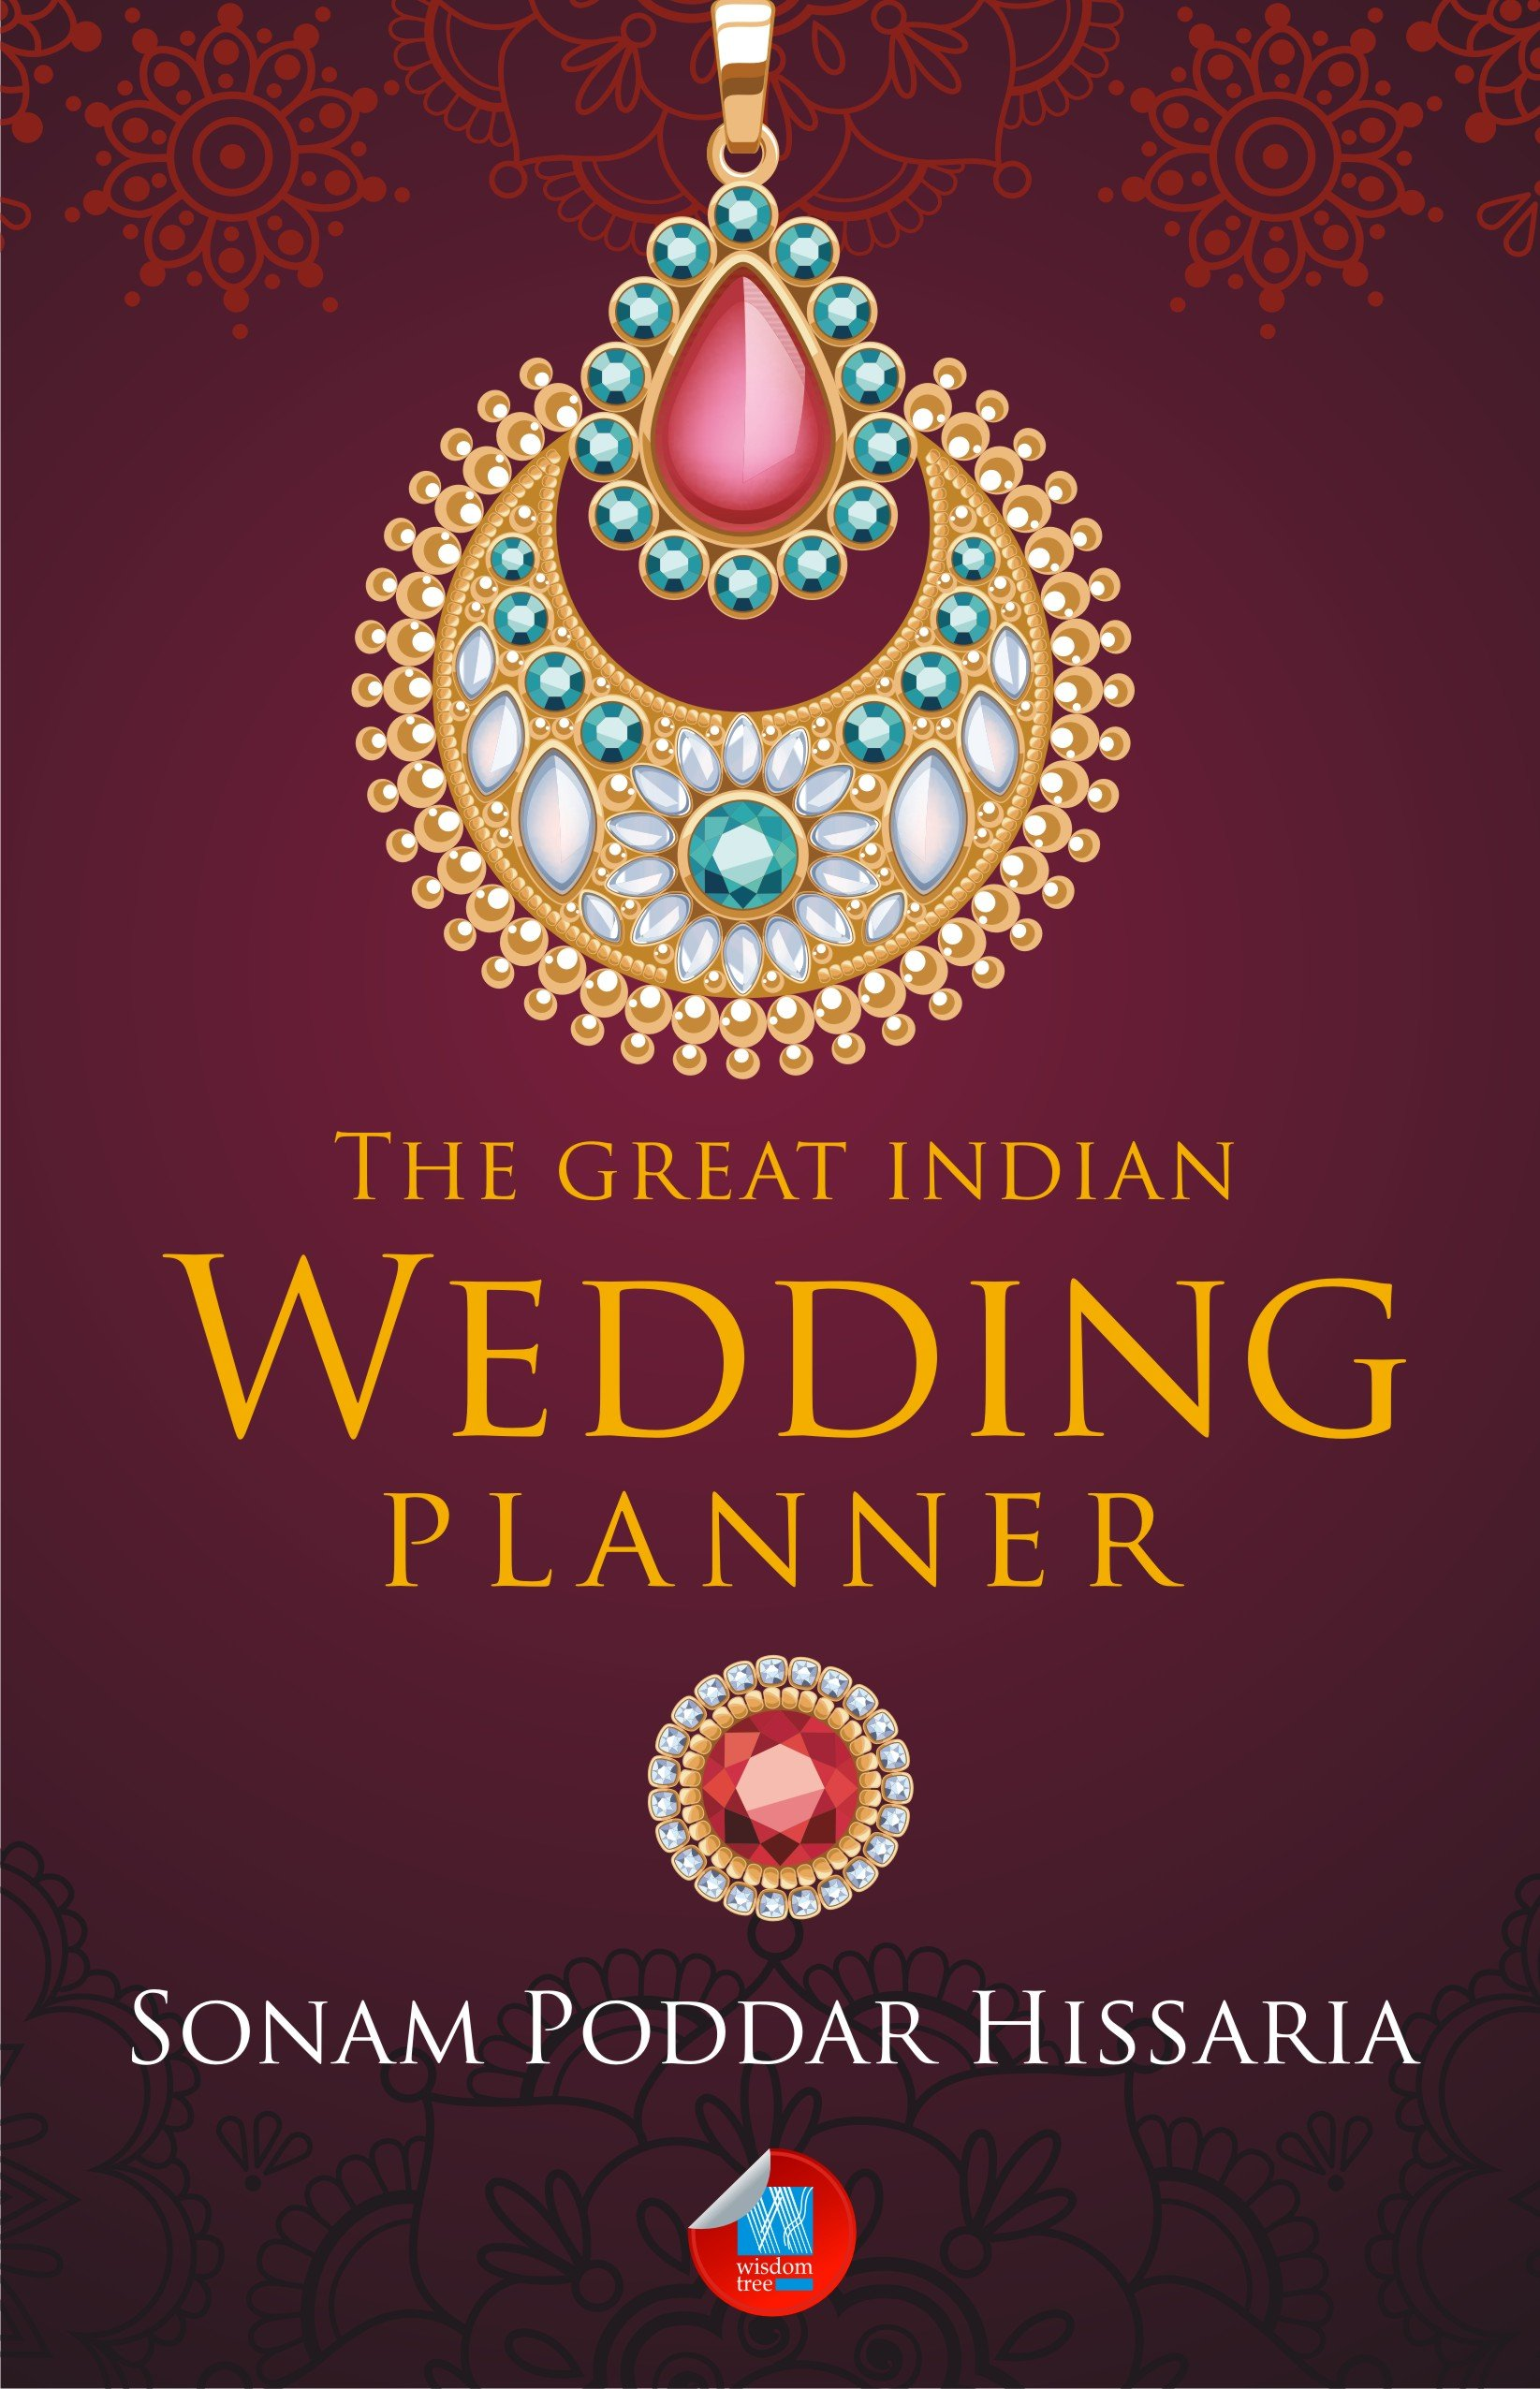 Buy The Great Indian Wedding Planner Book Online at Low Prices in